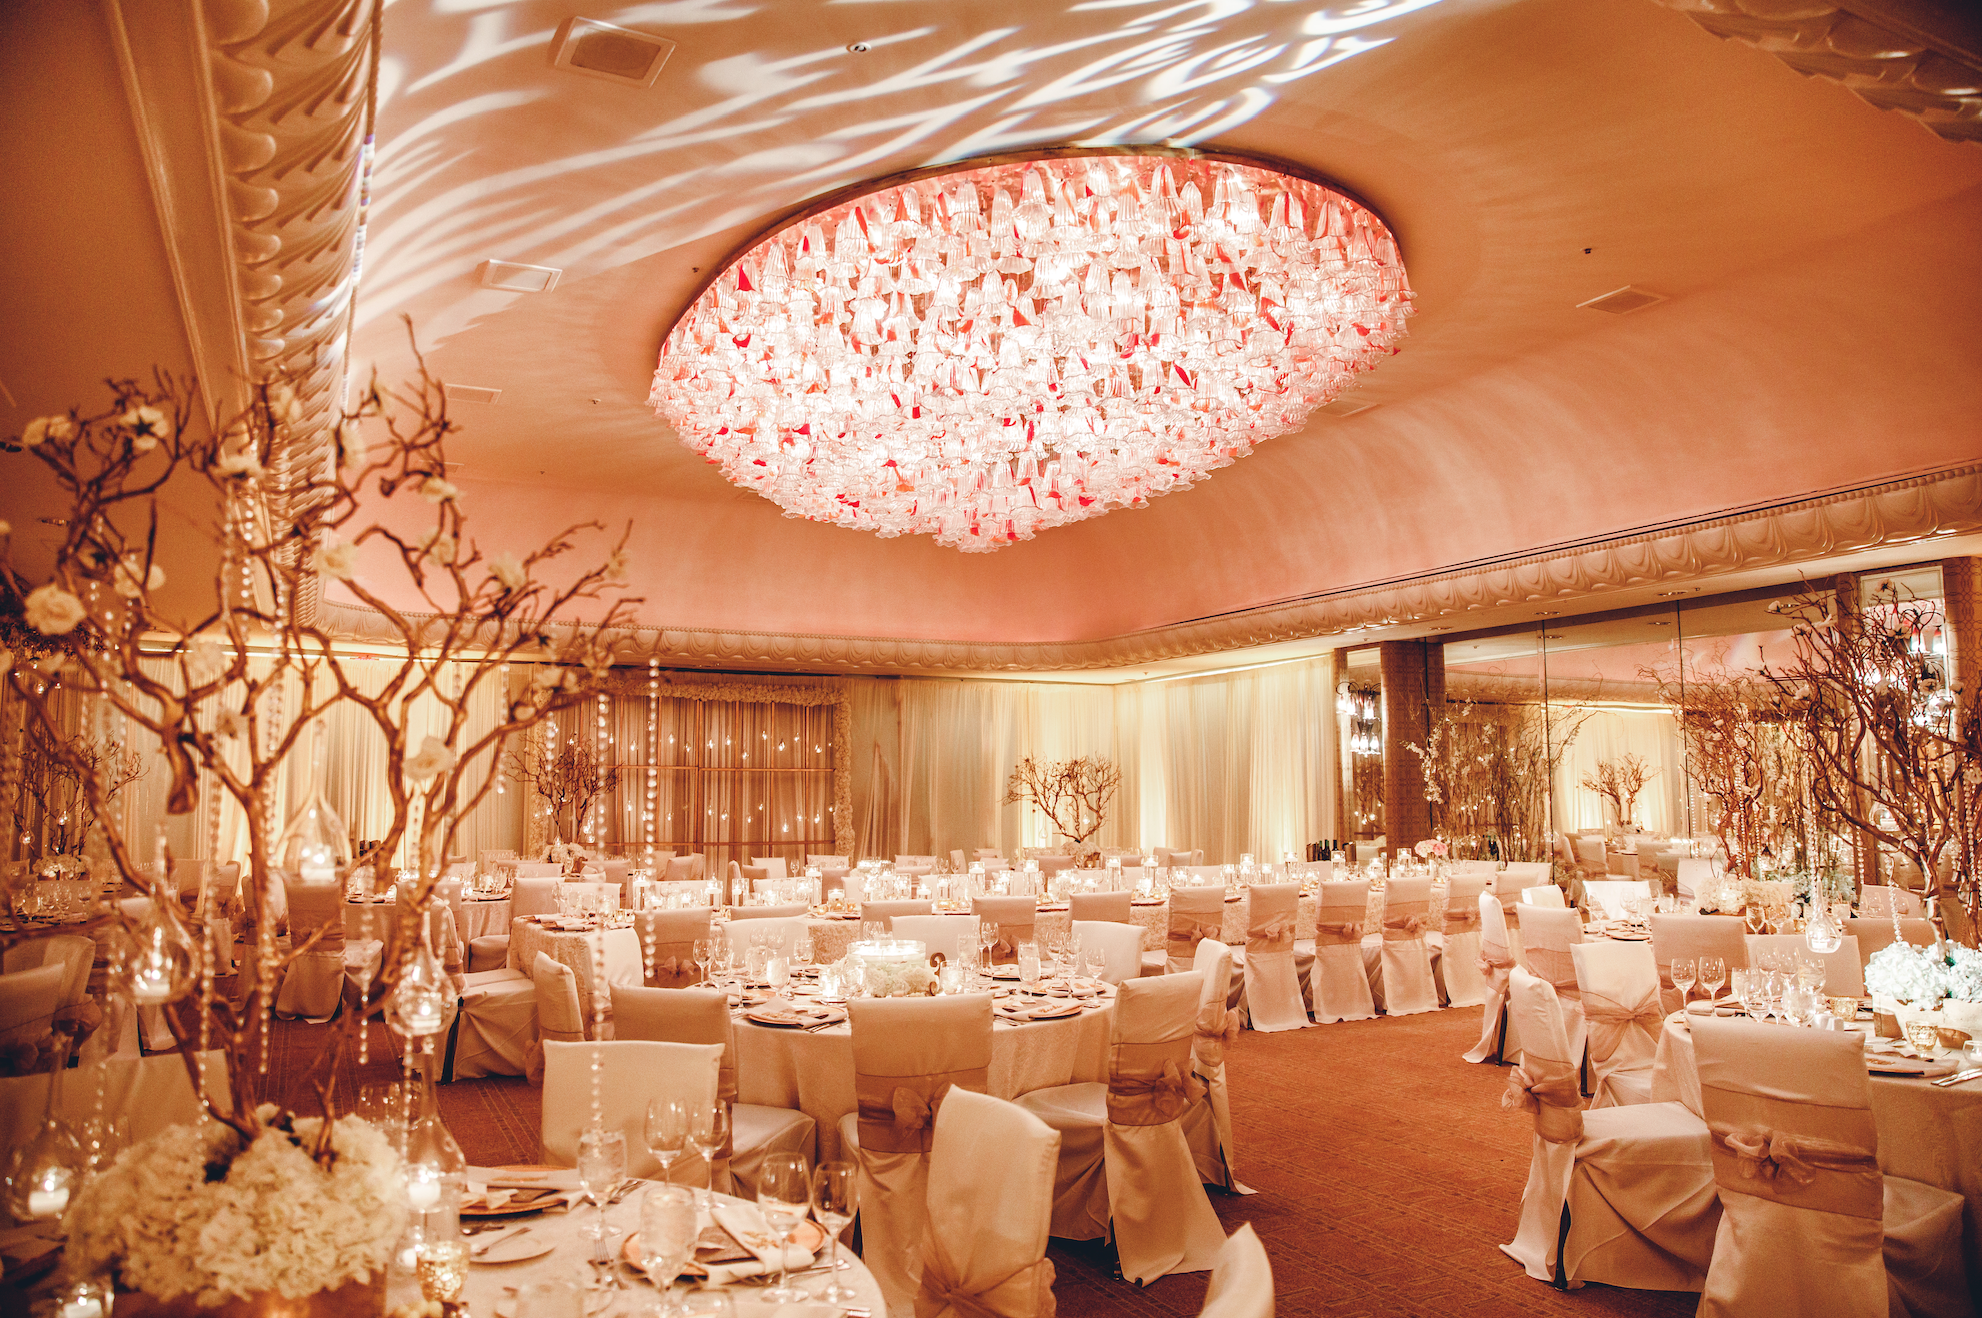 Weddings and formal events demand an effortless glow, achieved here through perfect tonal balance and artful projections on the ceilings and walls.